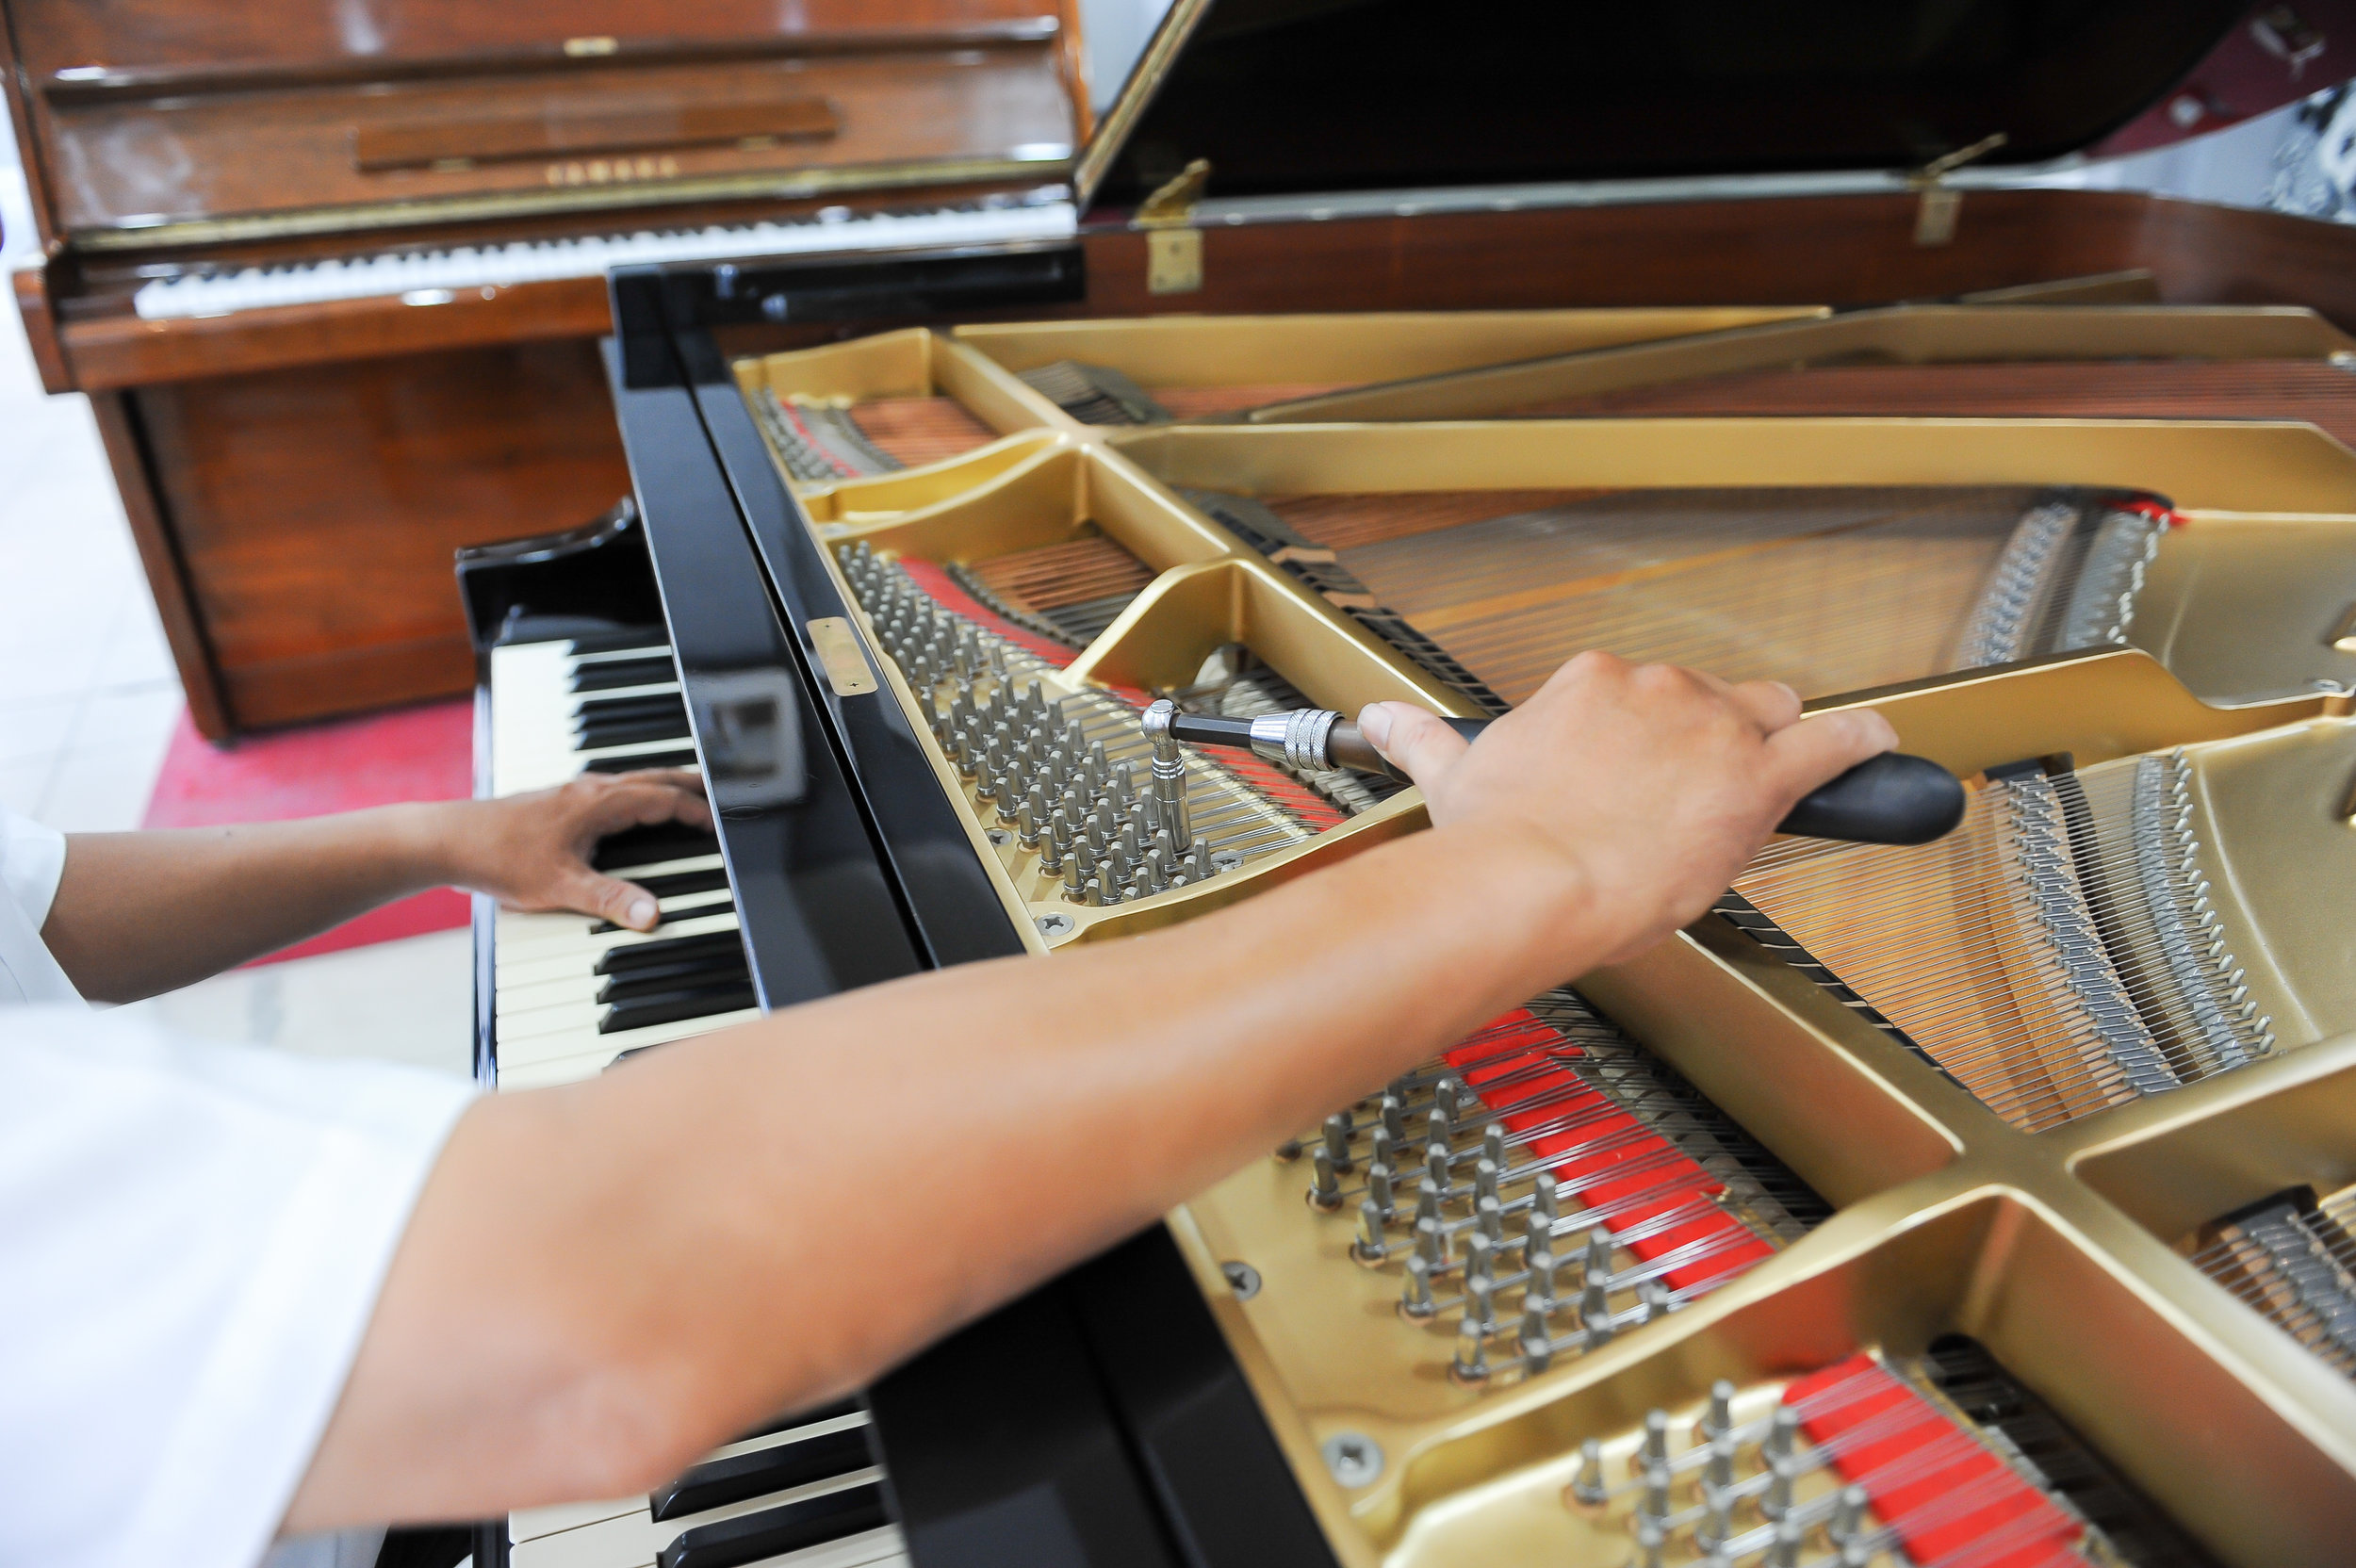 stock-photo-technician-tuning-the-piano-661123777.jpg